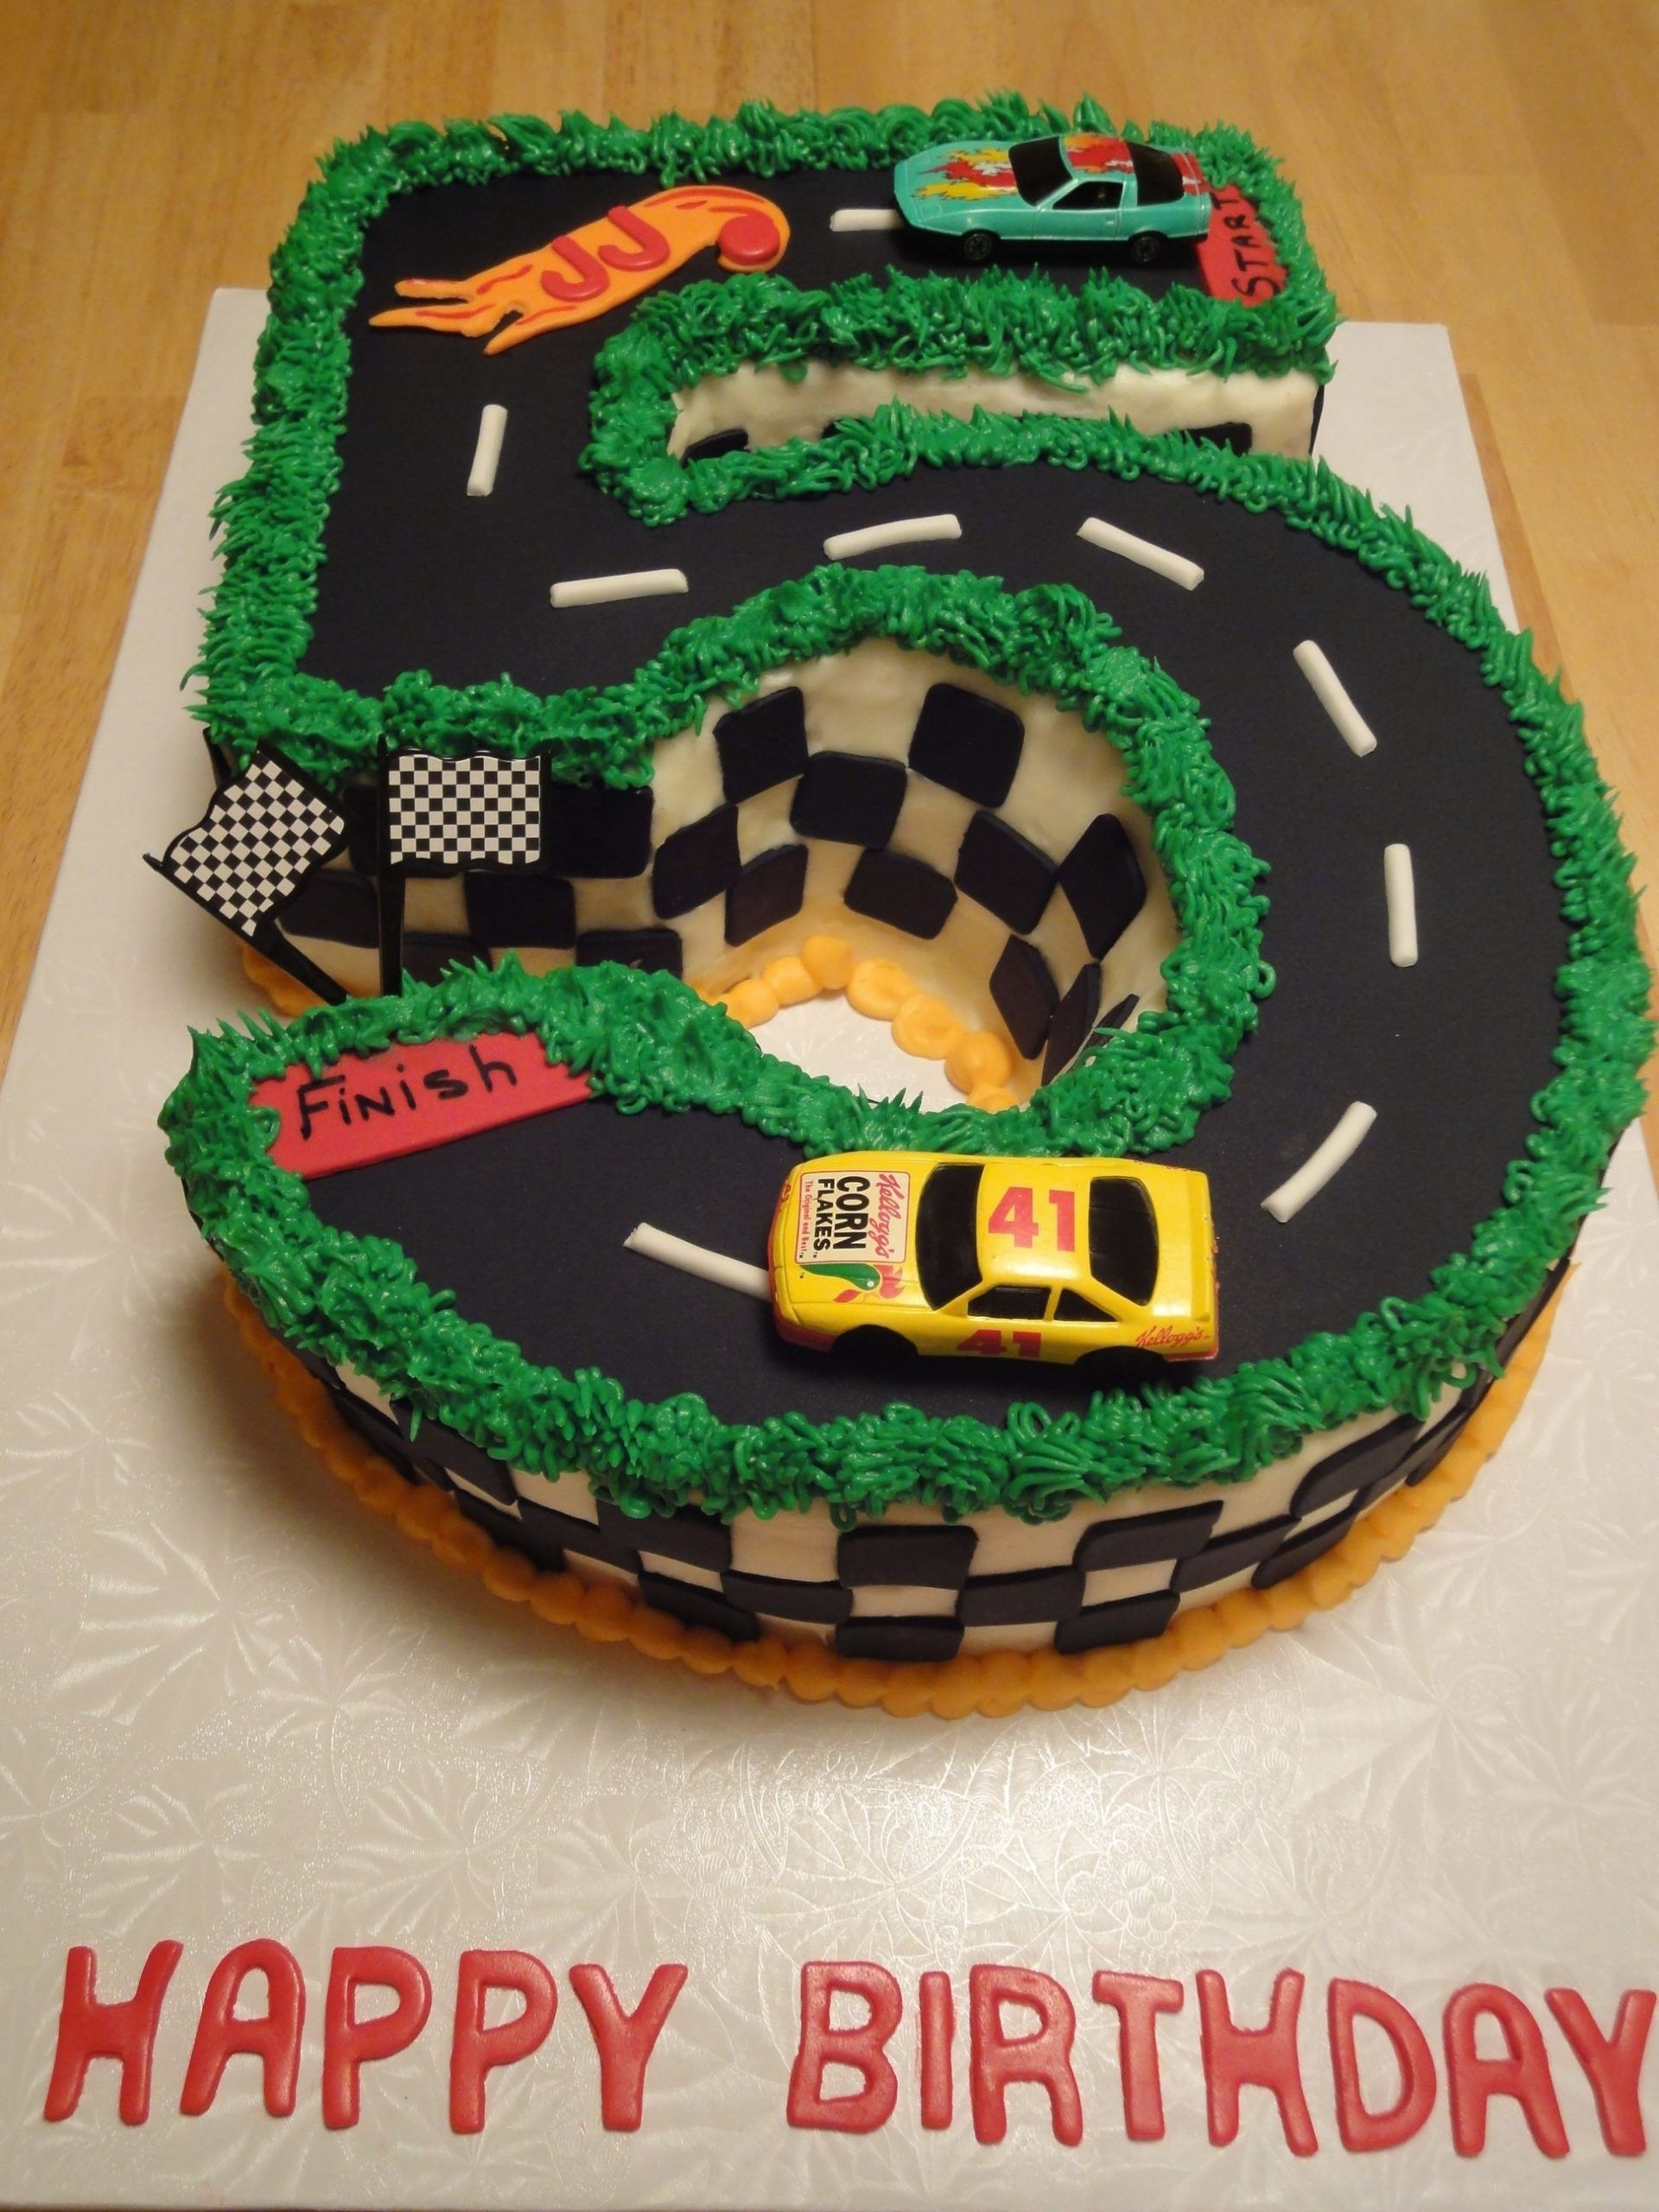 Birthday Cake For 5 Years Old Boy With Regard To Trending 2020 Birthday Ideas Make It Hot Wheels Birthday Cake 5th Birthday Cake Childrens Birthday Cakes